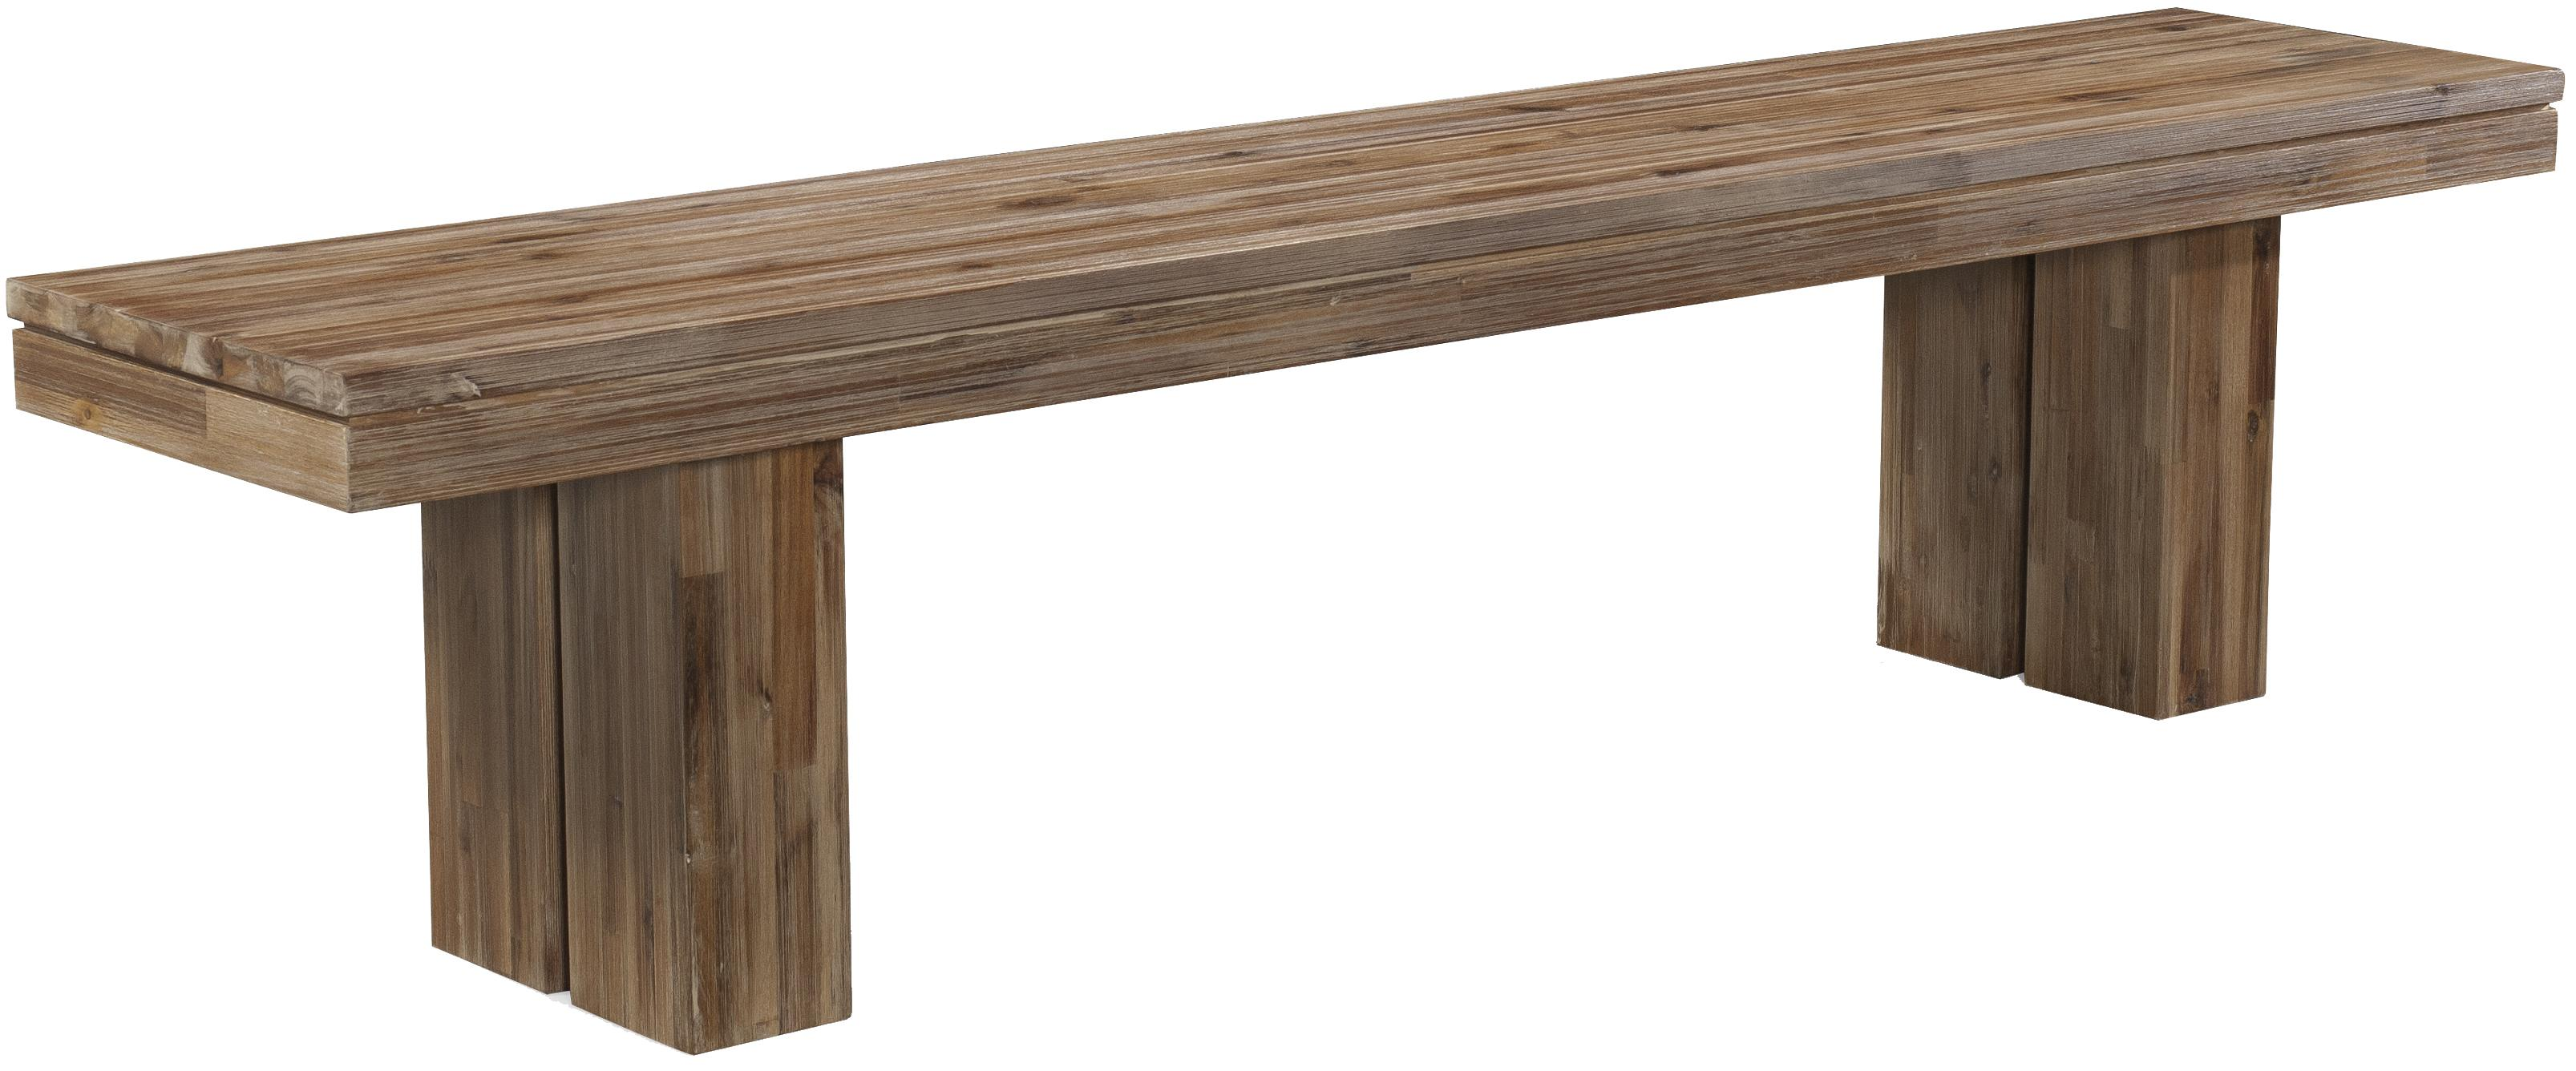 Acacia wood modern rustic dining bench with rectangular for Dining bench